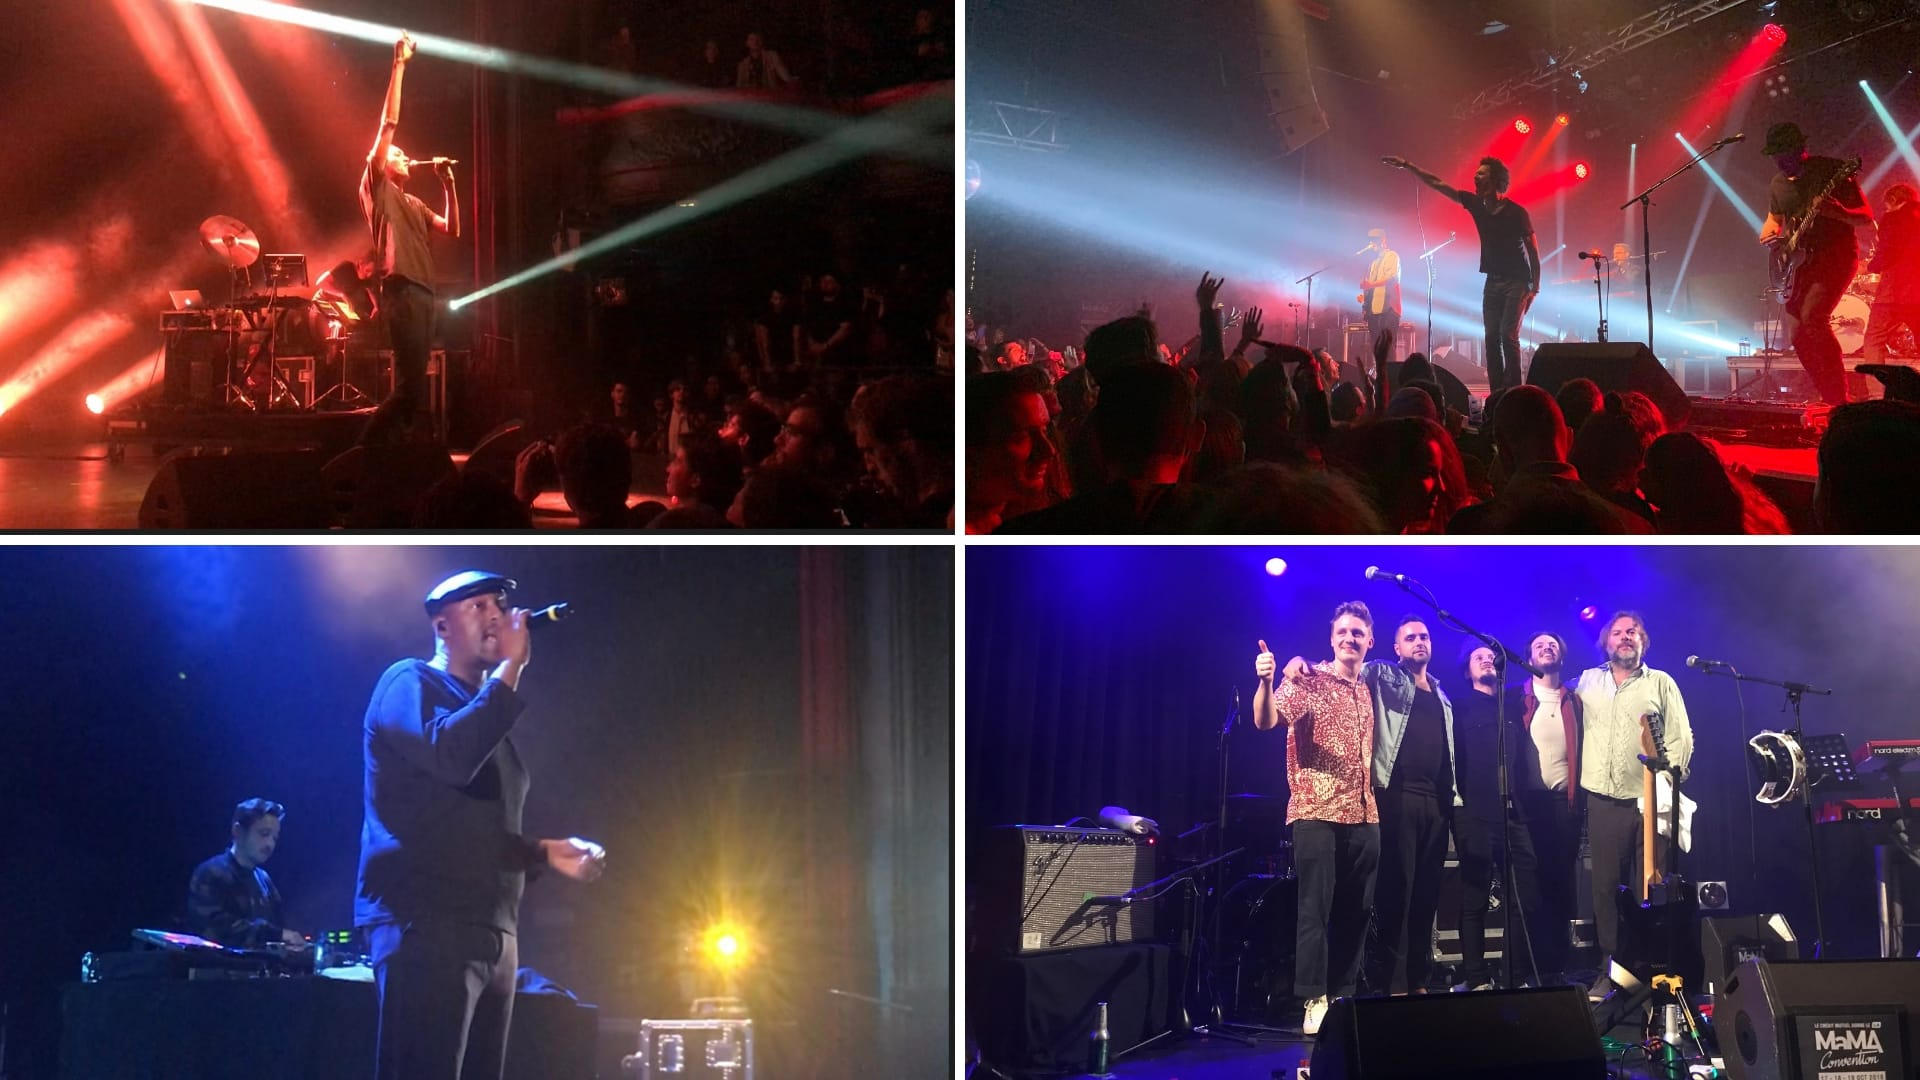 MaMA Festival 2018 images concerts Gaël Faye, Eagle Eye Cherry, Oxmo Puccino, Mamas Gun musique lives